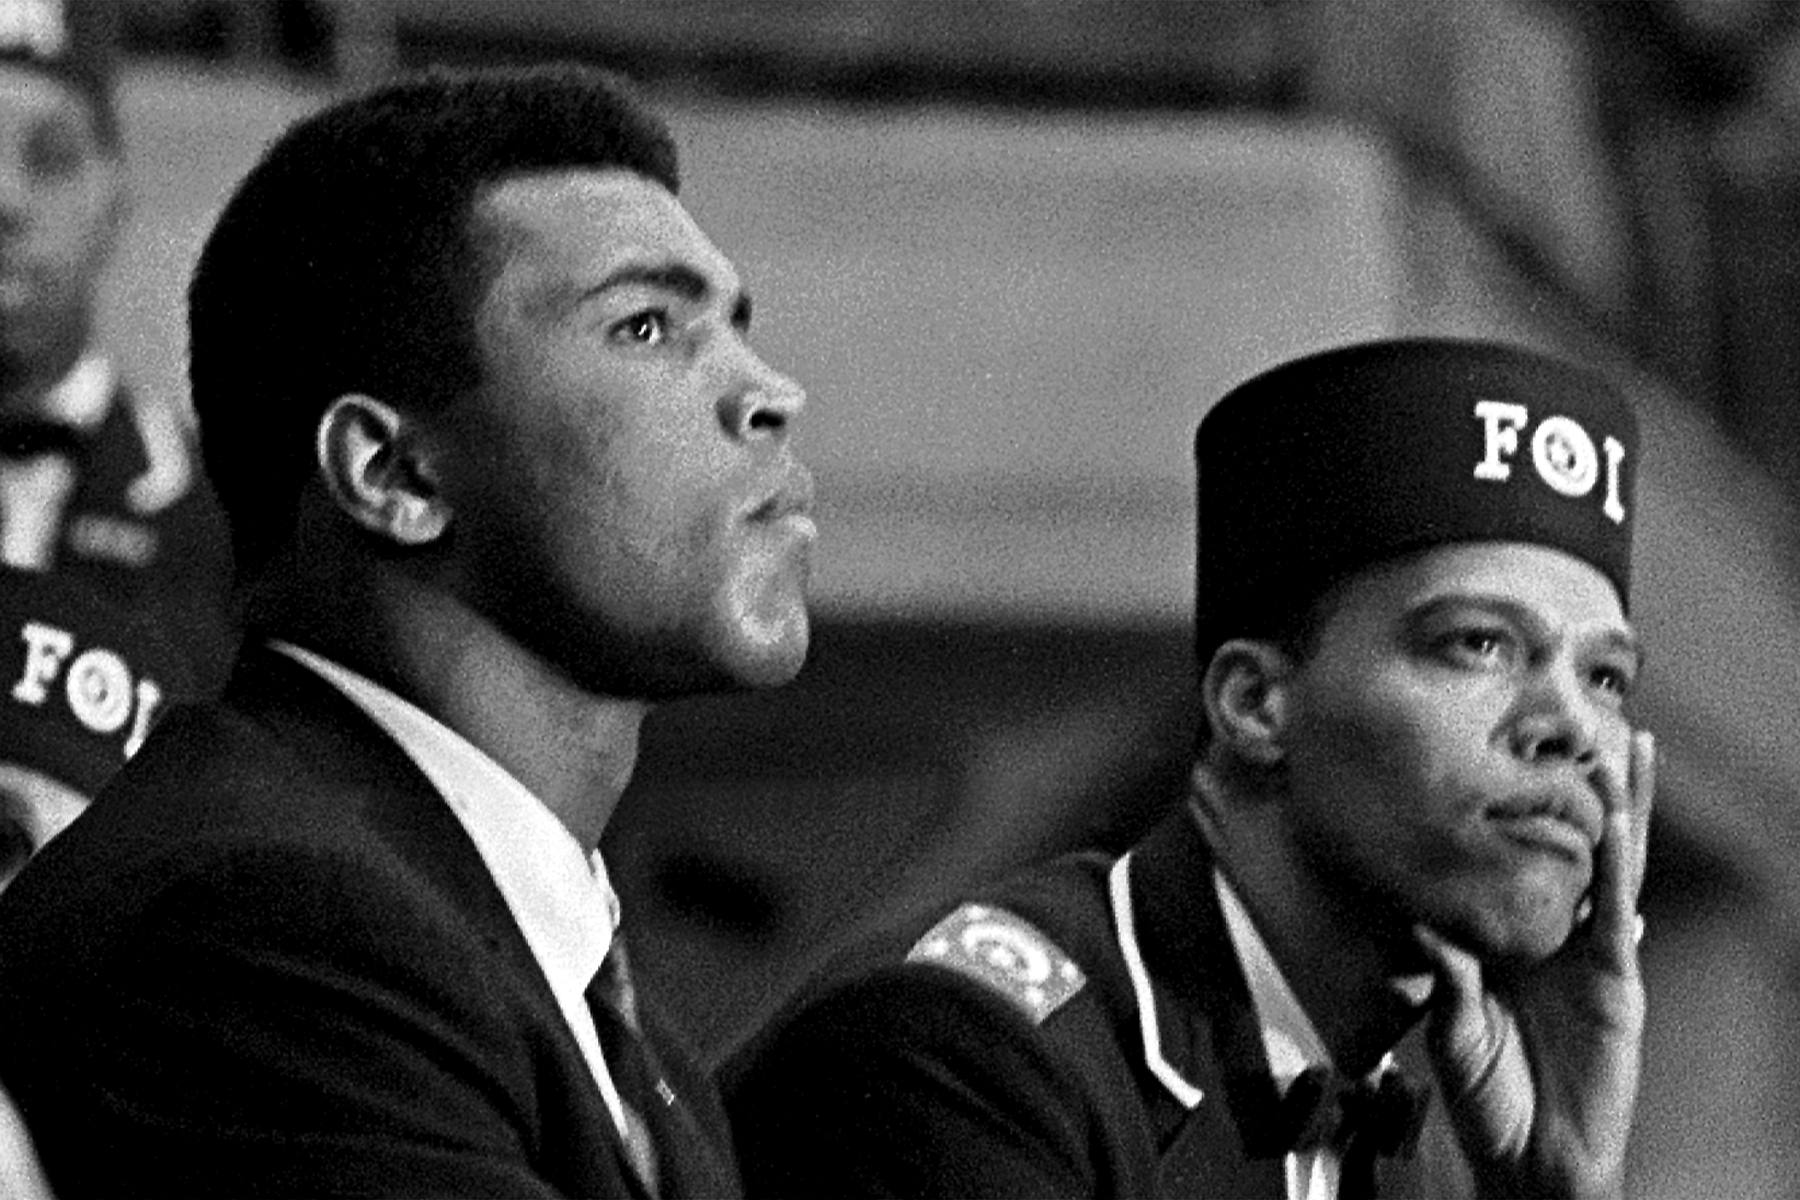 Close-up of American boxer Muhammad Ali (born Cassius Clay) (left) and Nation of Islam leader Louis Farrakhan (born Louis Walcott) as they listen to a speaker during the Saviour's Day celebrations at the International Ampitheatre, Chicago, Illinois, February 27, 1966. Farrakhan wears a Fruit of Islam uniform, a subset of the Nation of Islam.